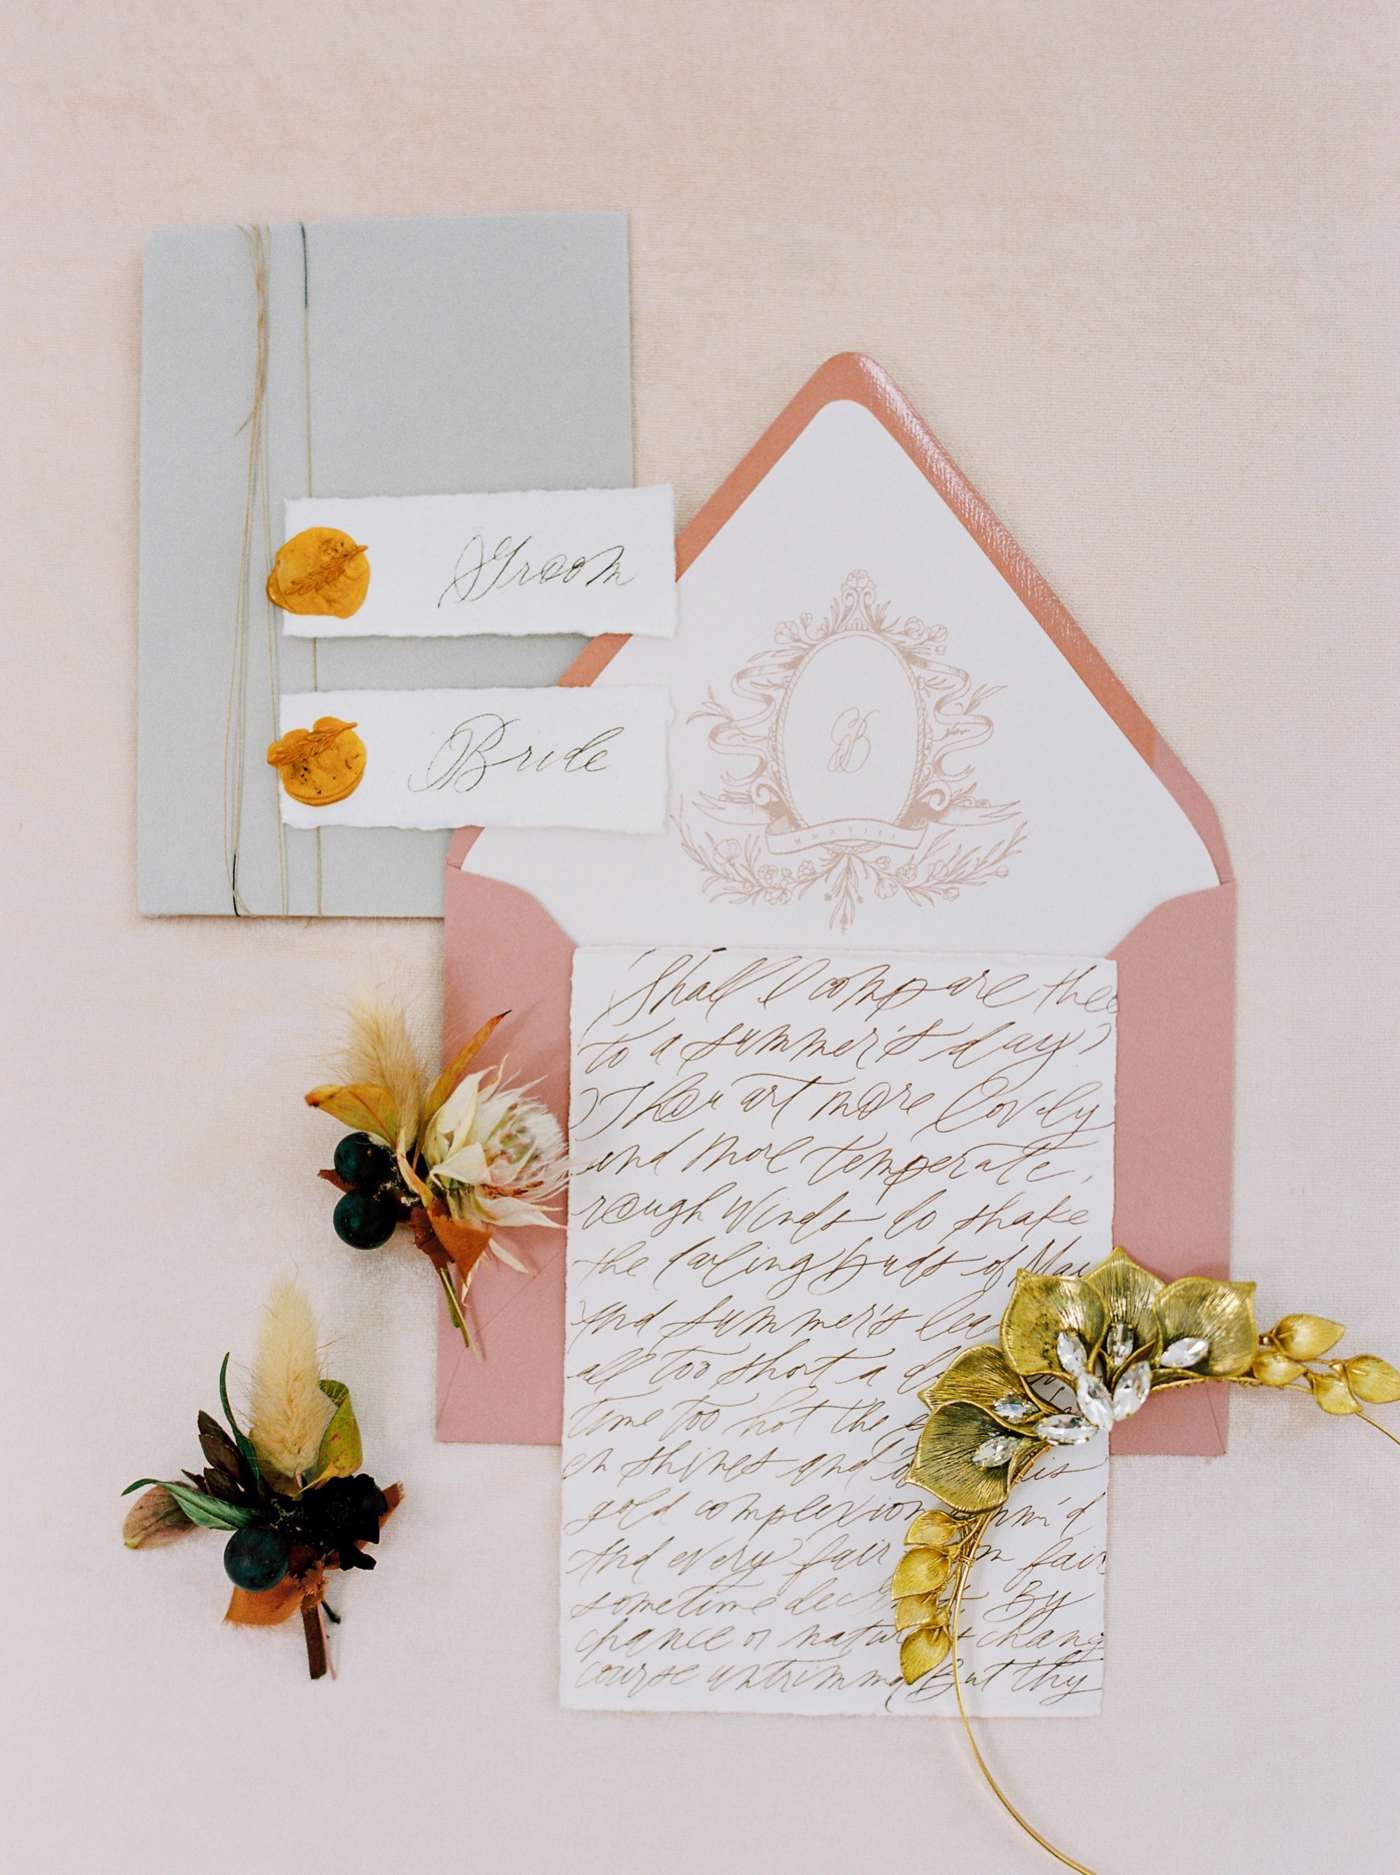 Dallas wedding photographers | wedding photography 1 on 1 workshop | fall wedding inspiration invitations stationery calligraphy | Justine milton film photographer